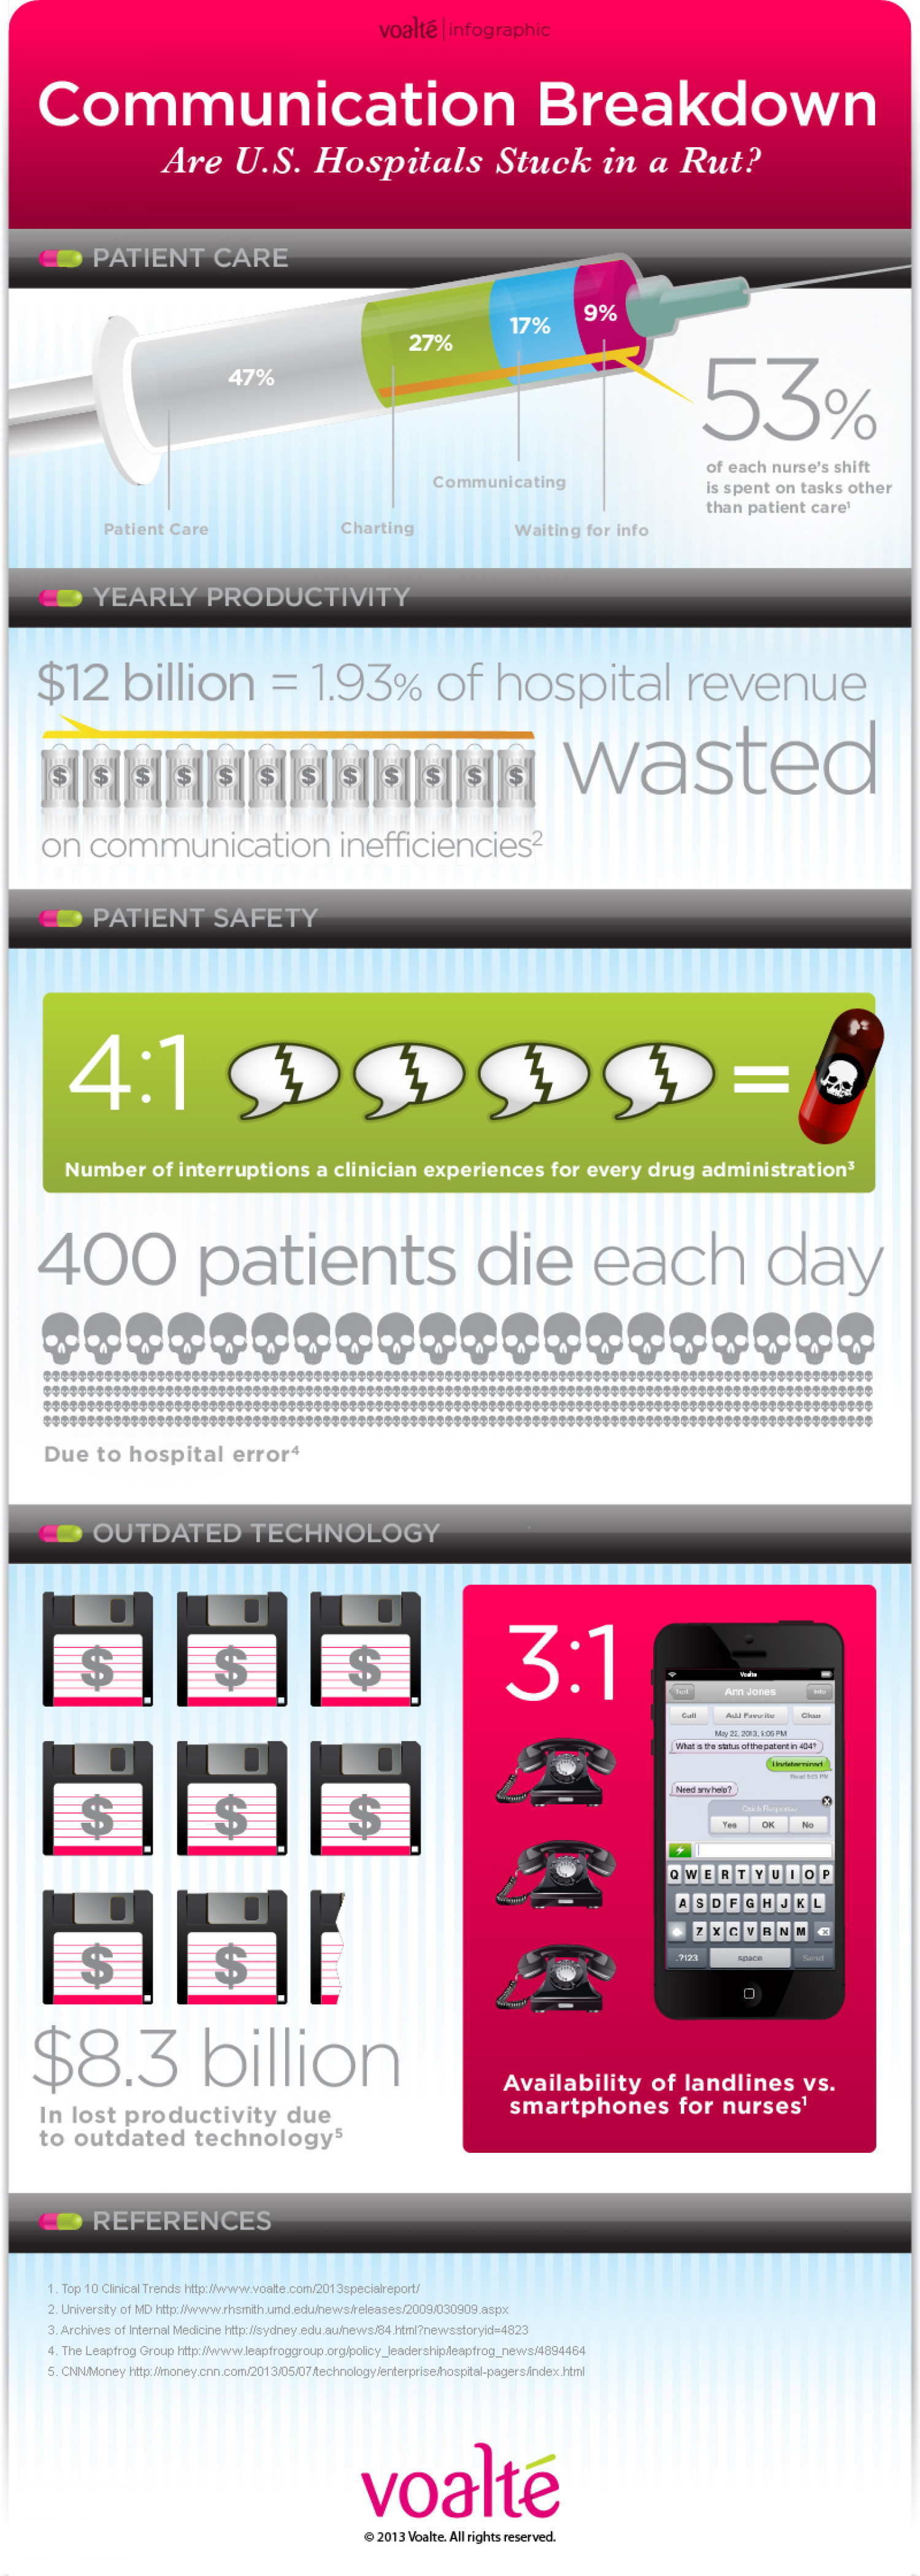 Communication Breakdown: Are U.S. Hospitals Stuck in a Rut Infographic